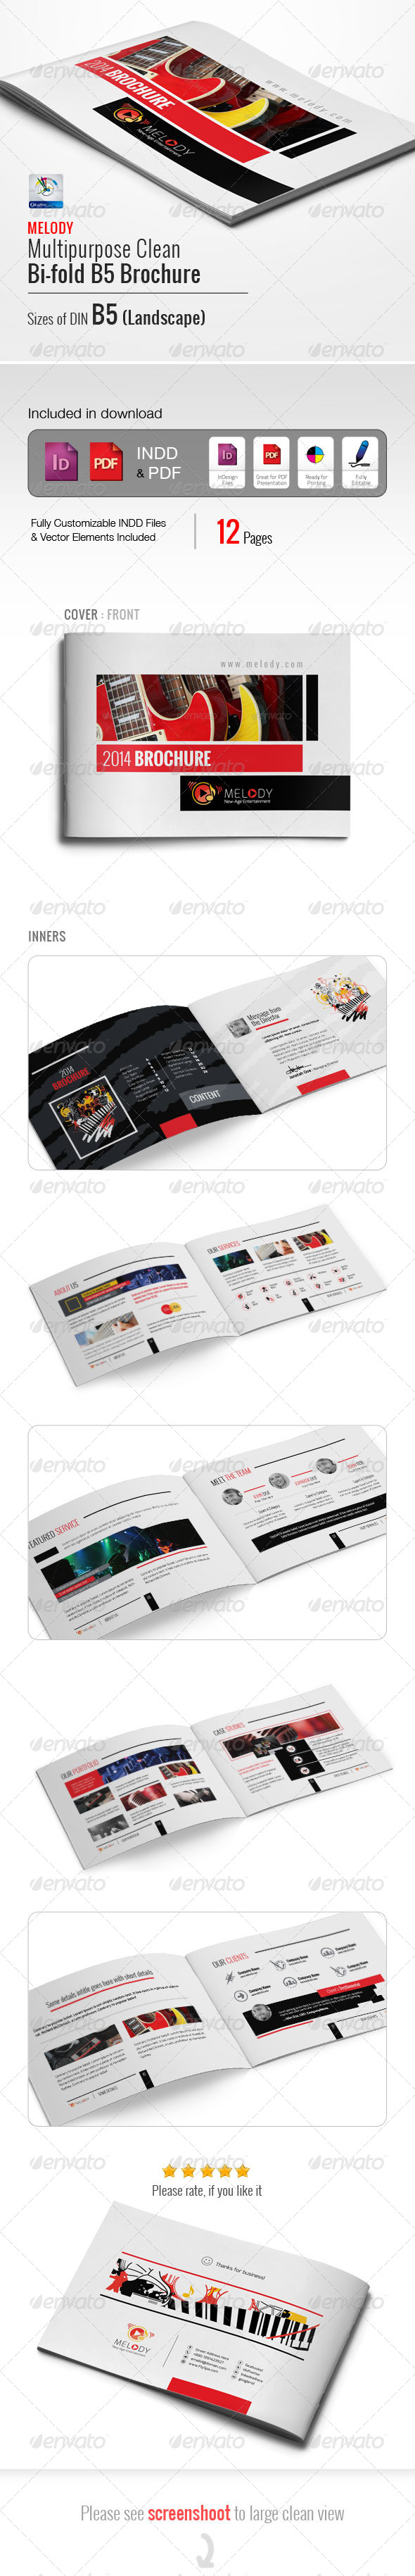 GraphicRiver Melody Clean Multipurpose B5 Brochure 5838754